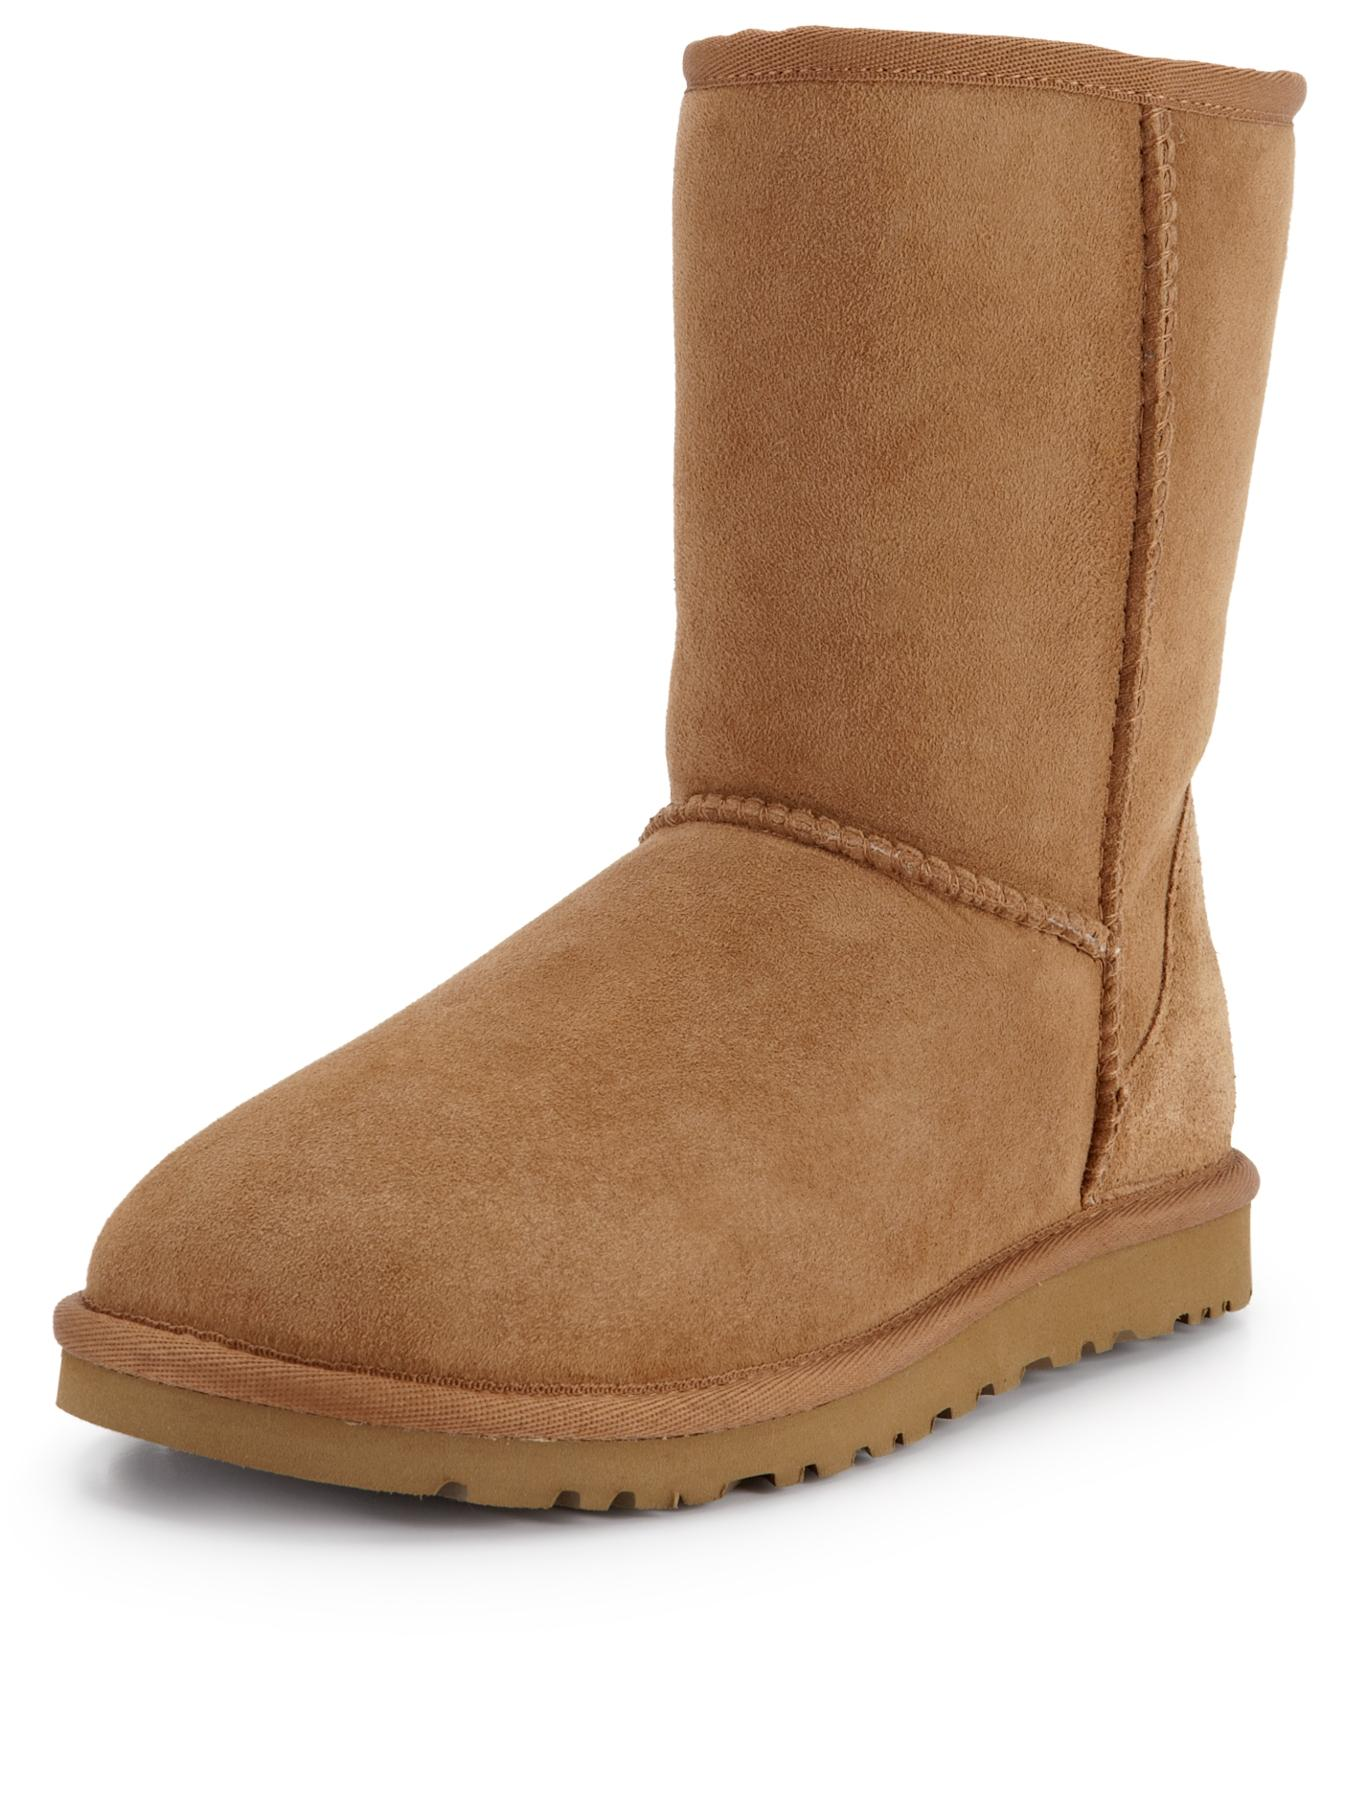 Classic Short Boots - Chestnut